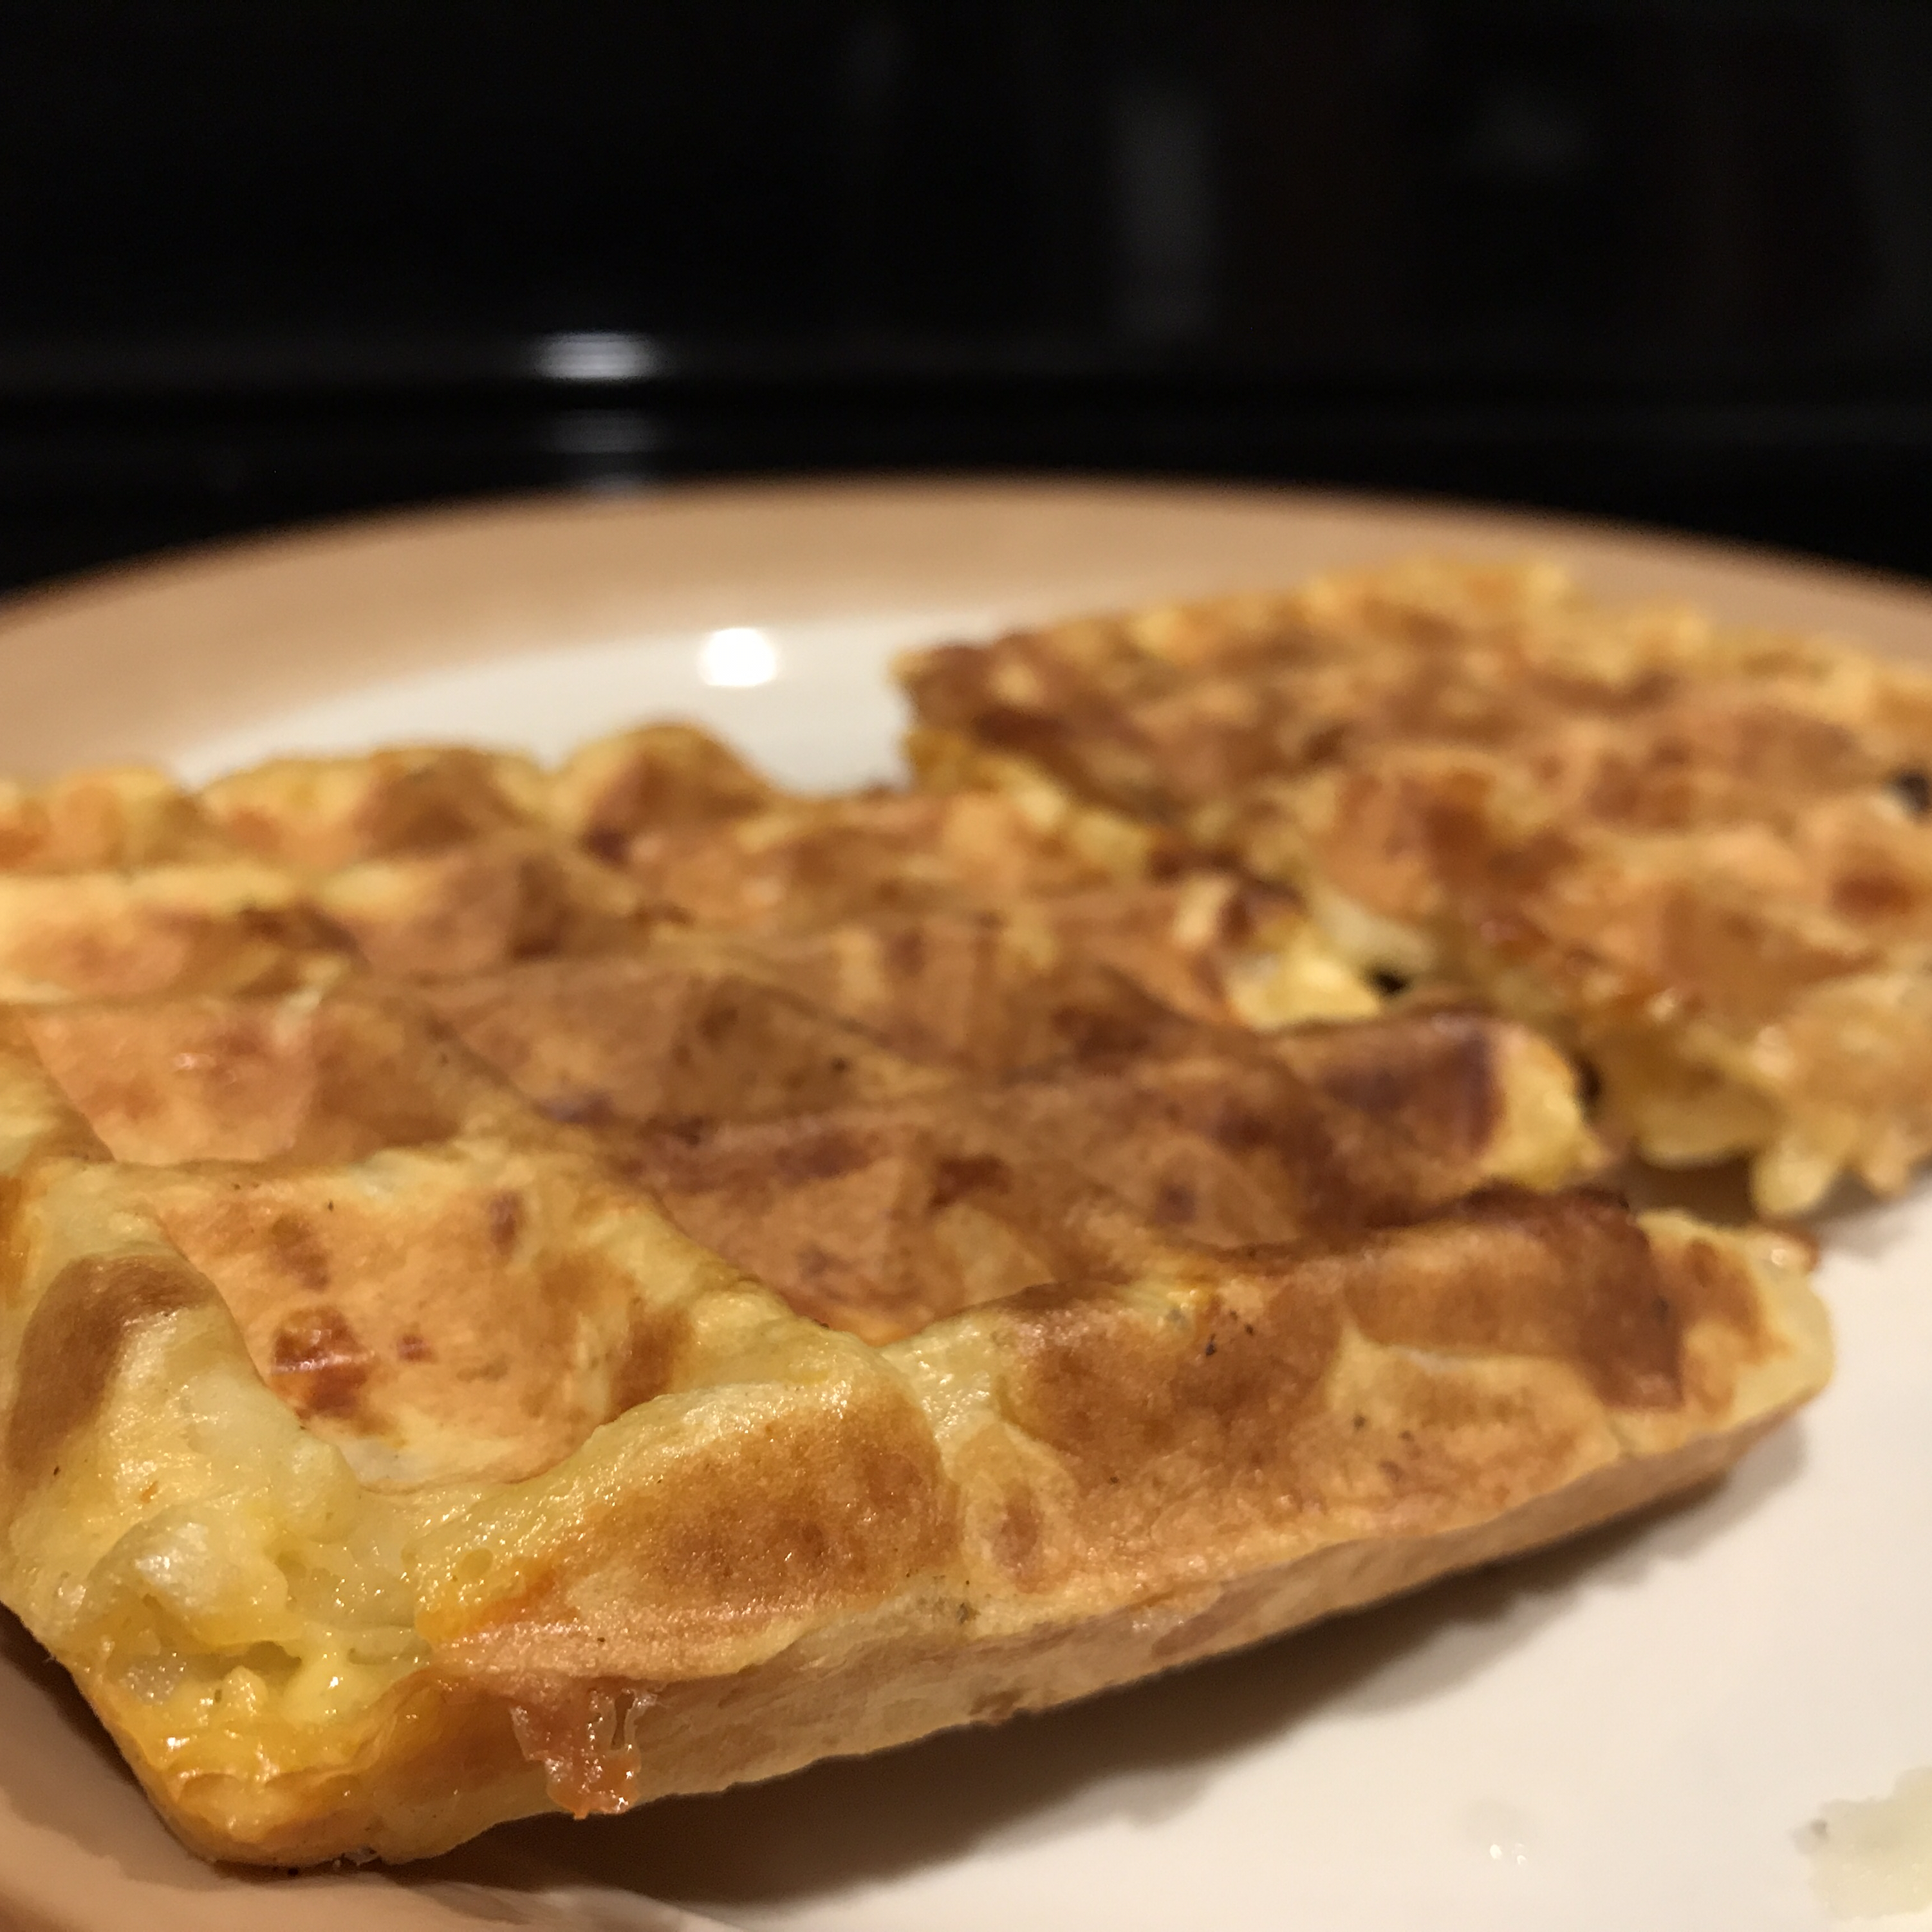 Kitchen Sink Hash Brown and Egg Waffle Dale Tunender